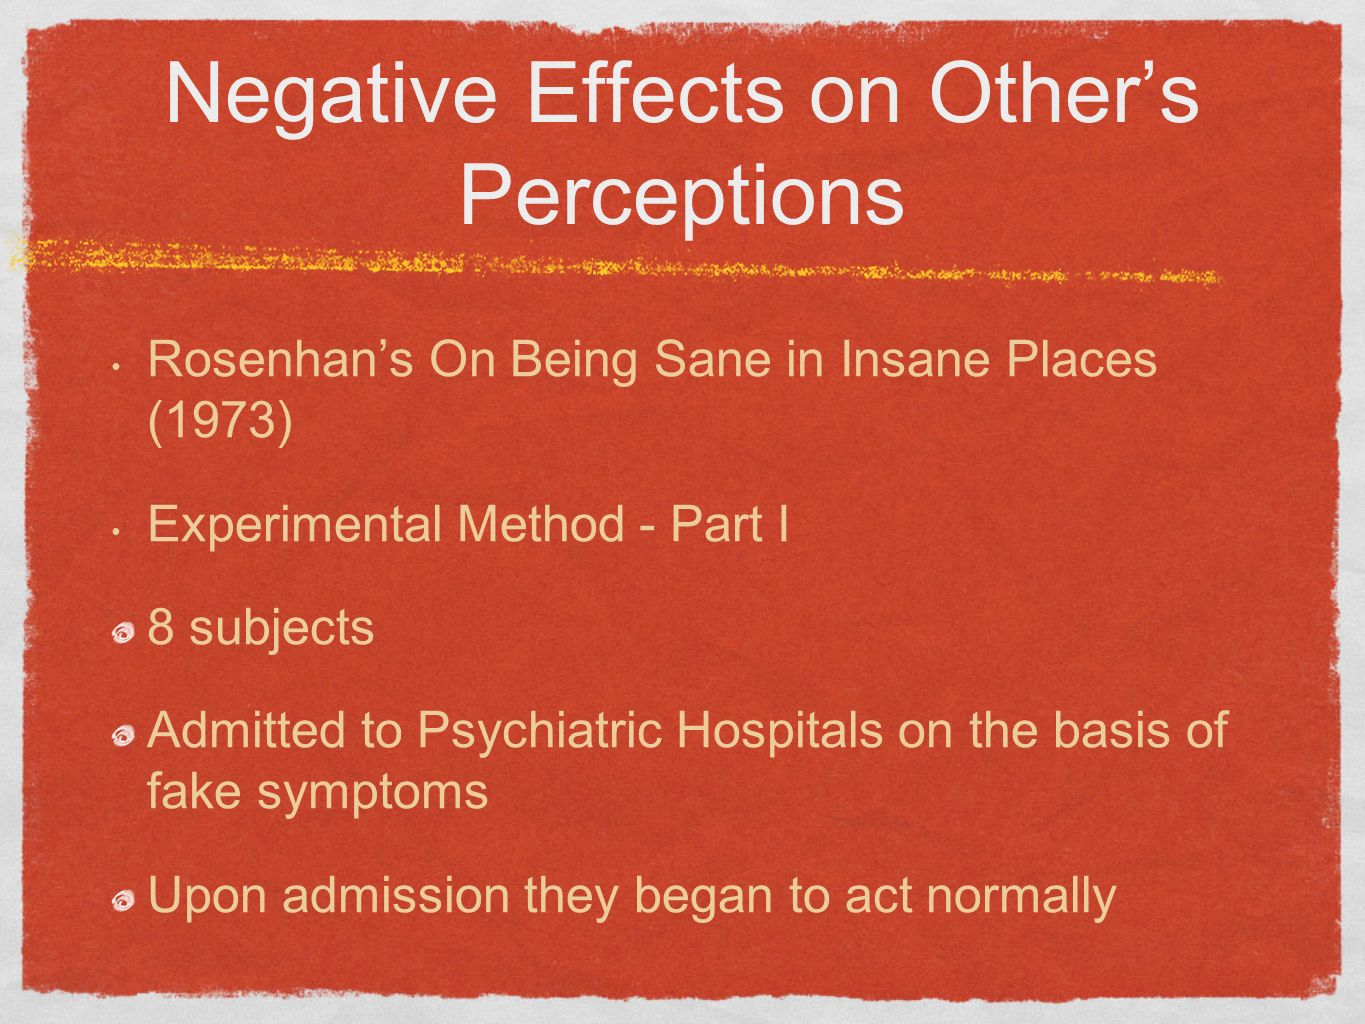 Negative Effects on Others Perceptions Rosenhans On Being Sane in Insane Places (1973) Experimental Method - Part I 8 subjects Admitted to Psychiatric